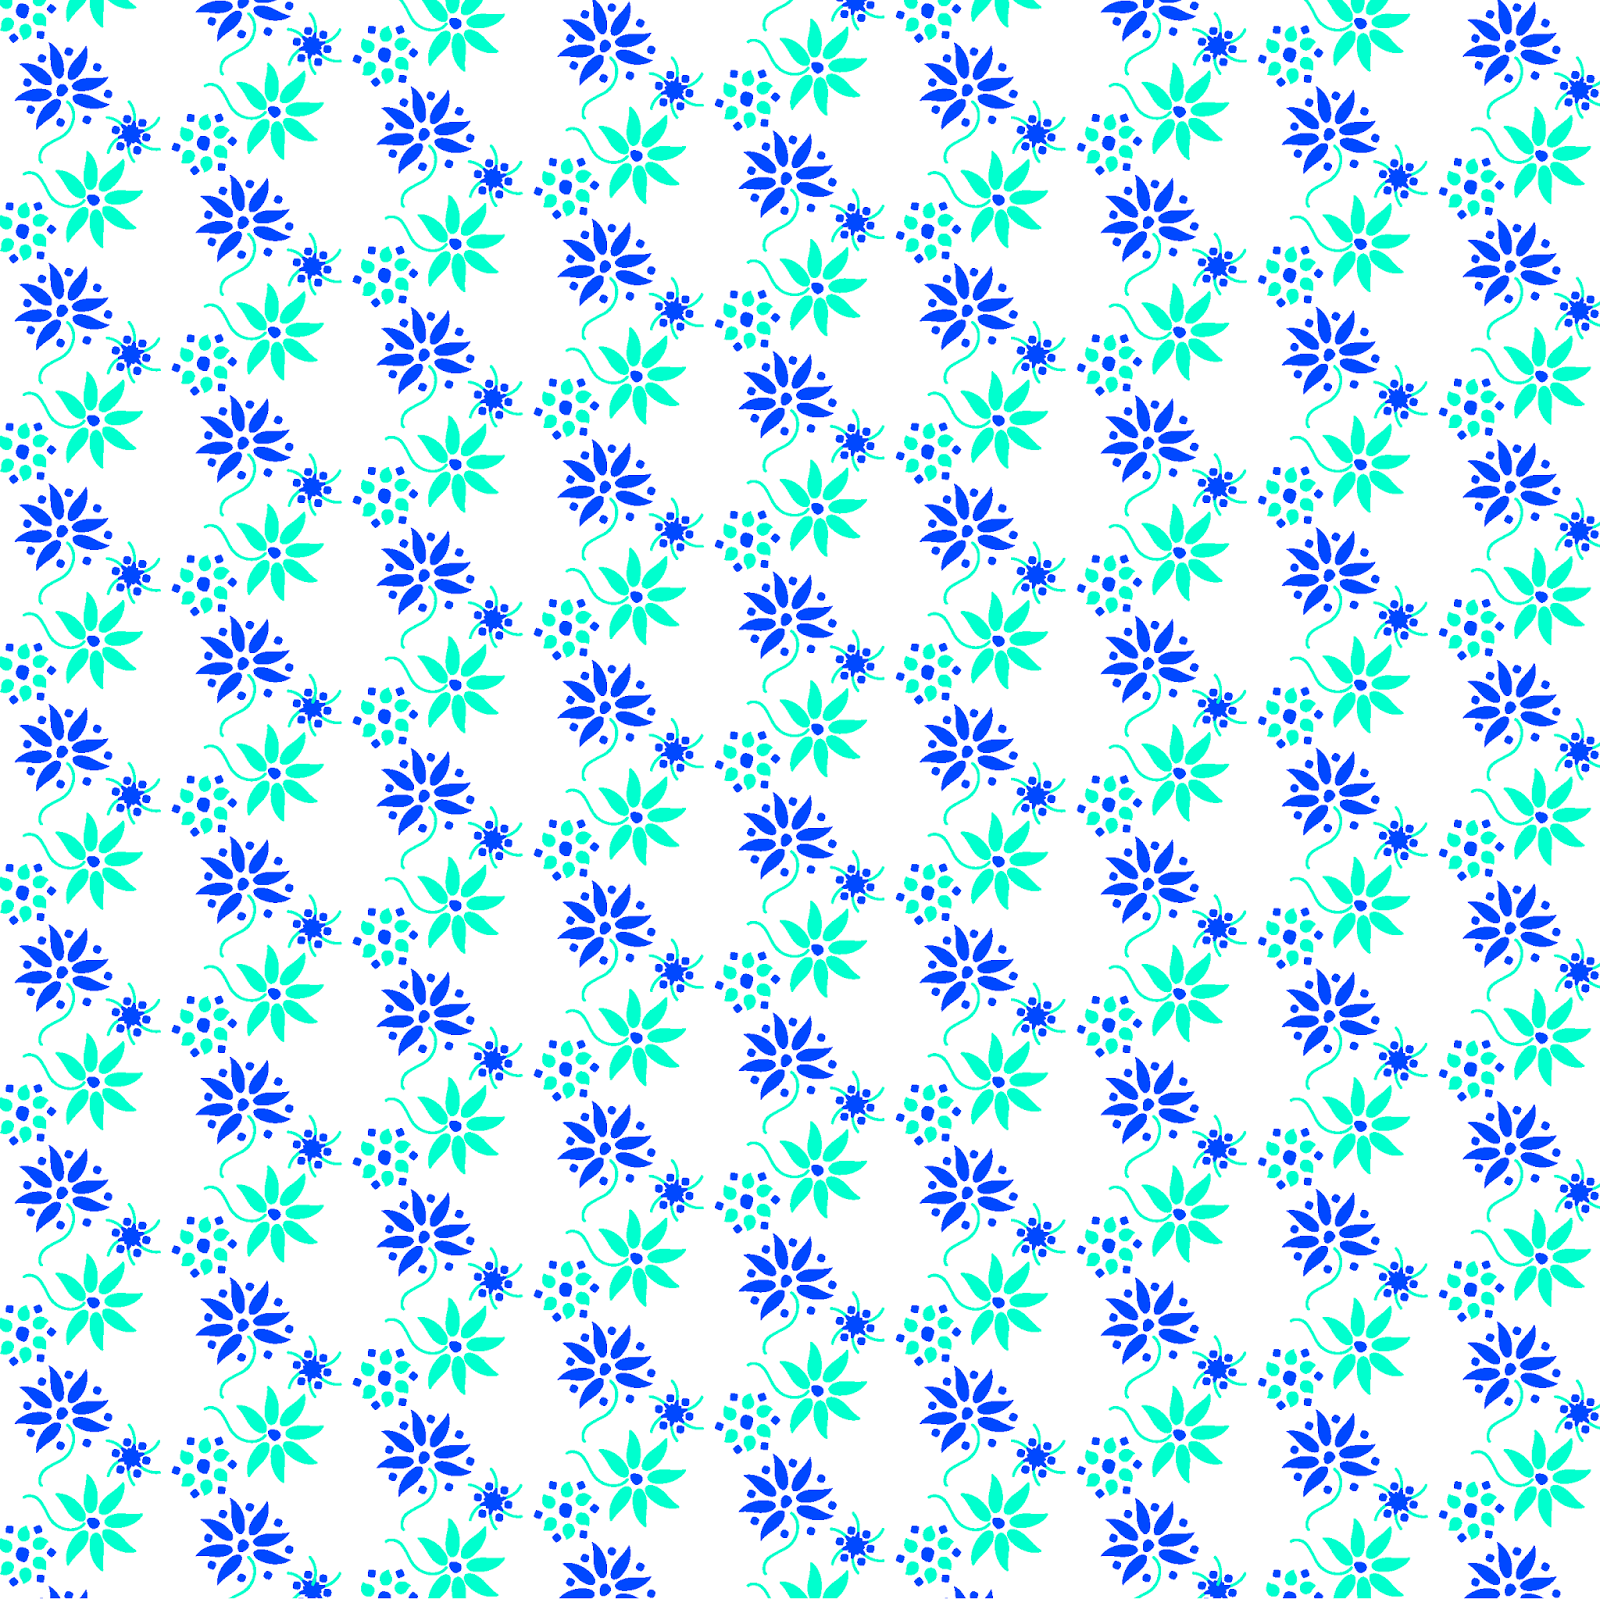 Floral Pattern - Jen Haugan Animation & Illustration